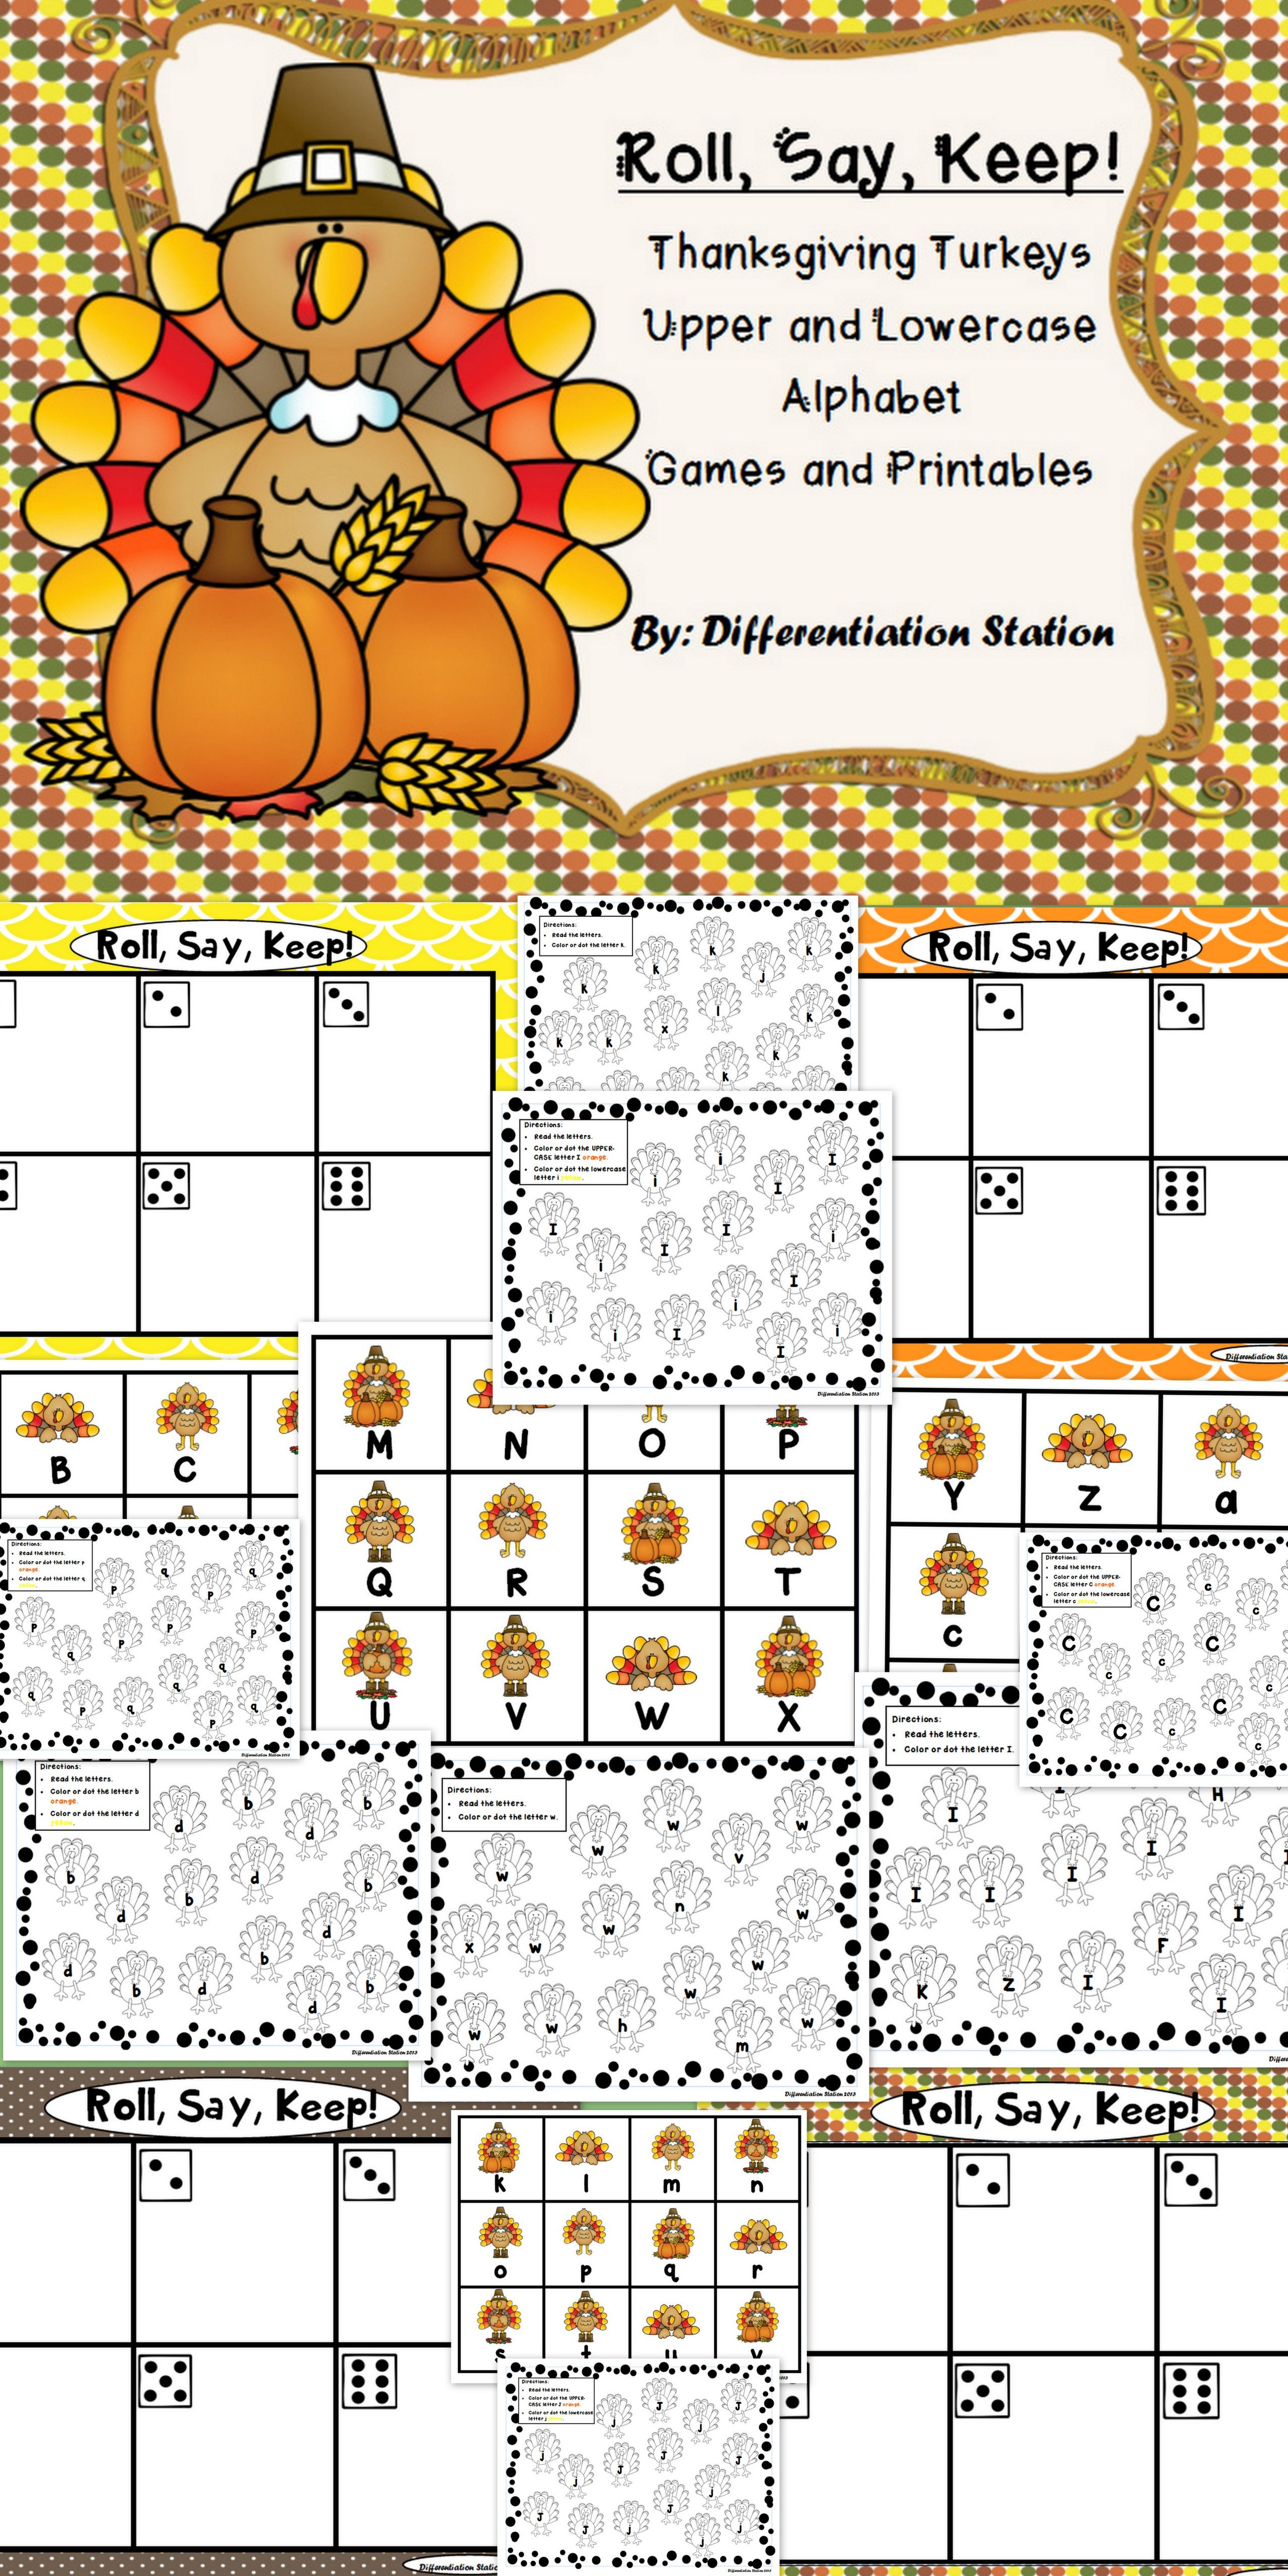 Thanksgiving Turkeys Roll Say Keep Alphabet Center Game And Printables